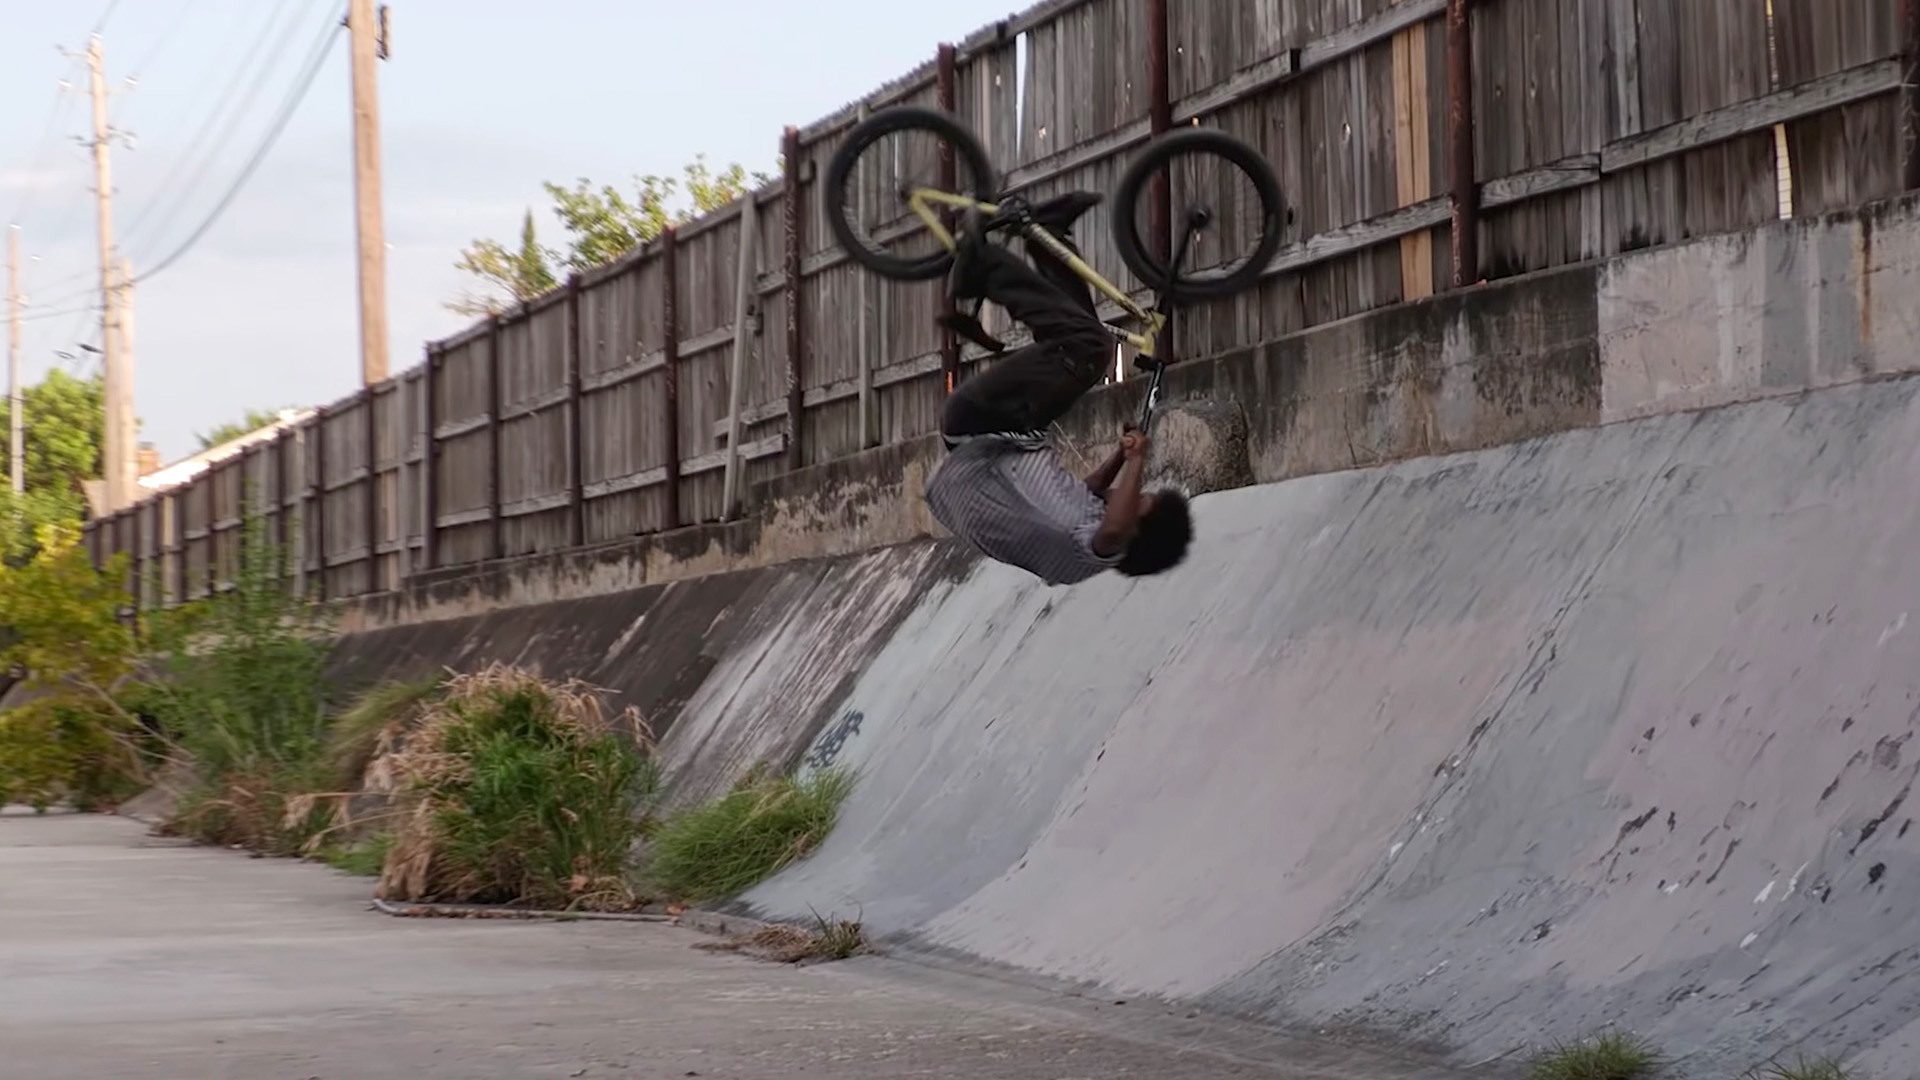 KINK BMX: Casey Starling - Welcome to the pro team